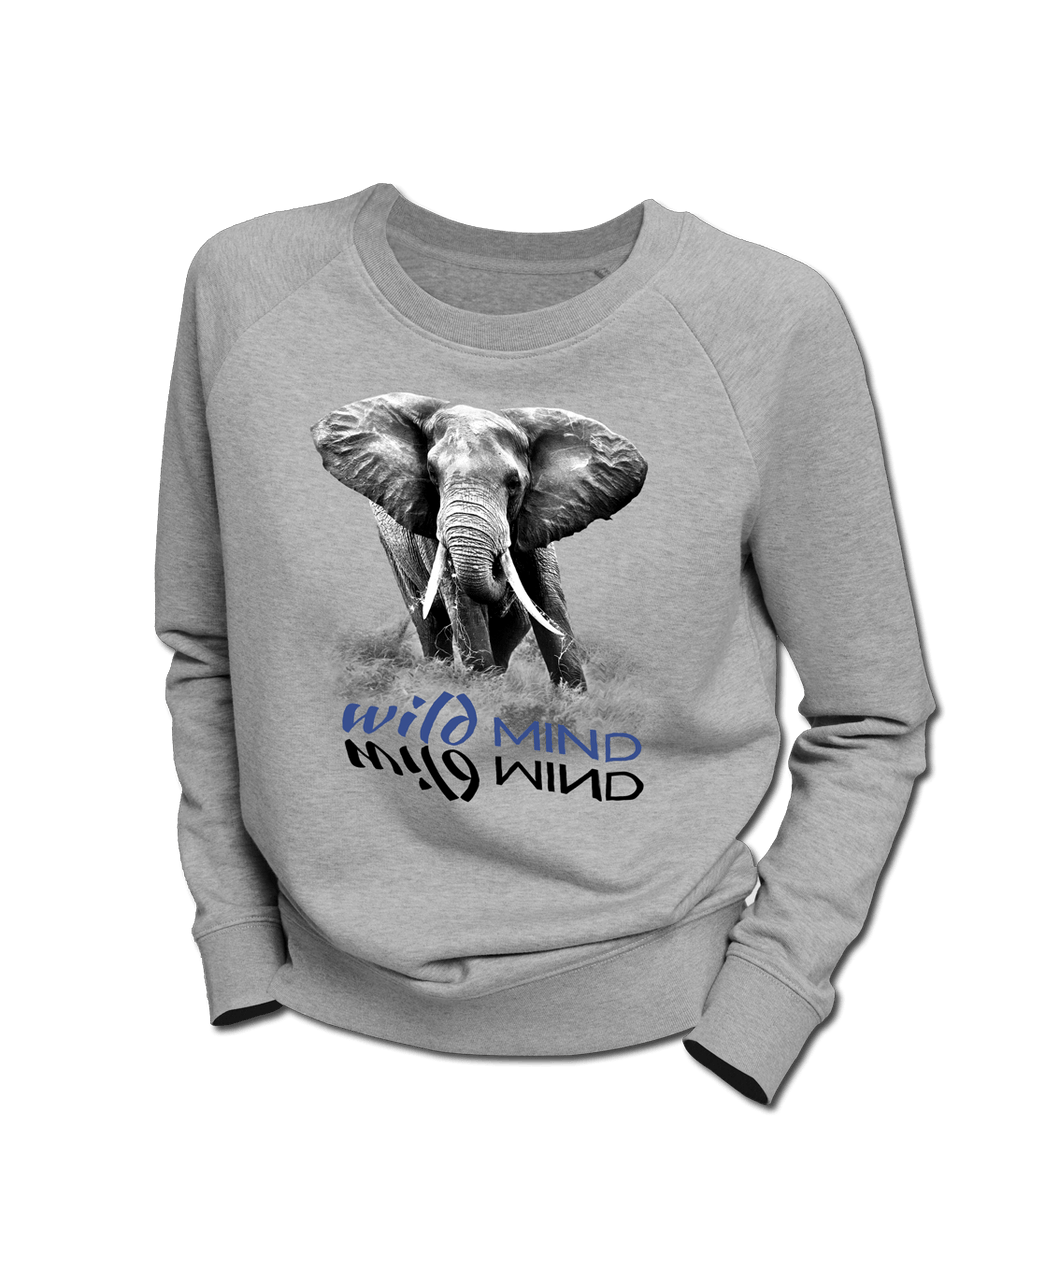 GIANT - wild MIND | Organic Sweatshirt | Damen